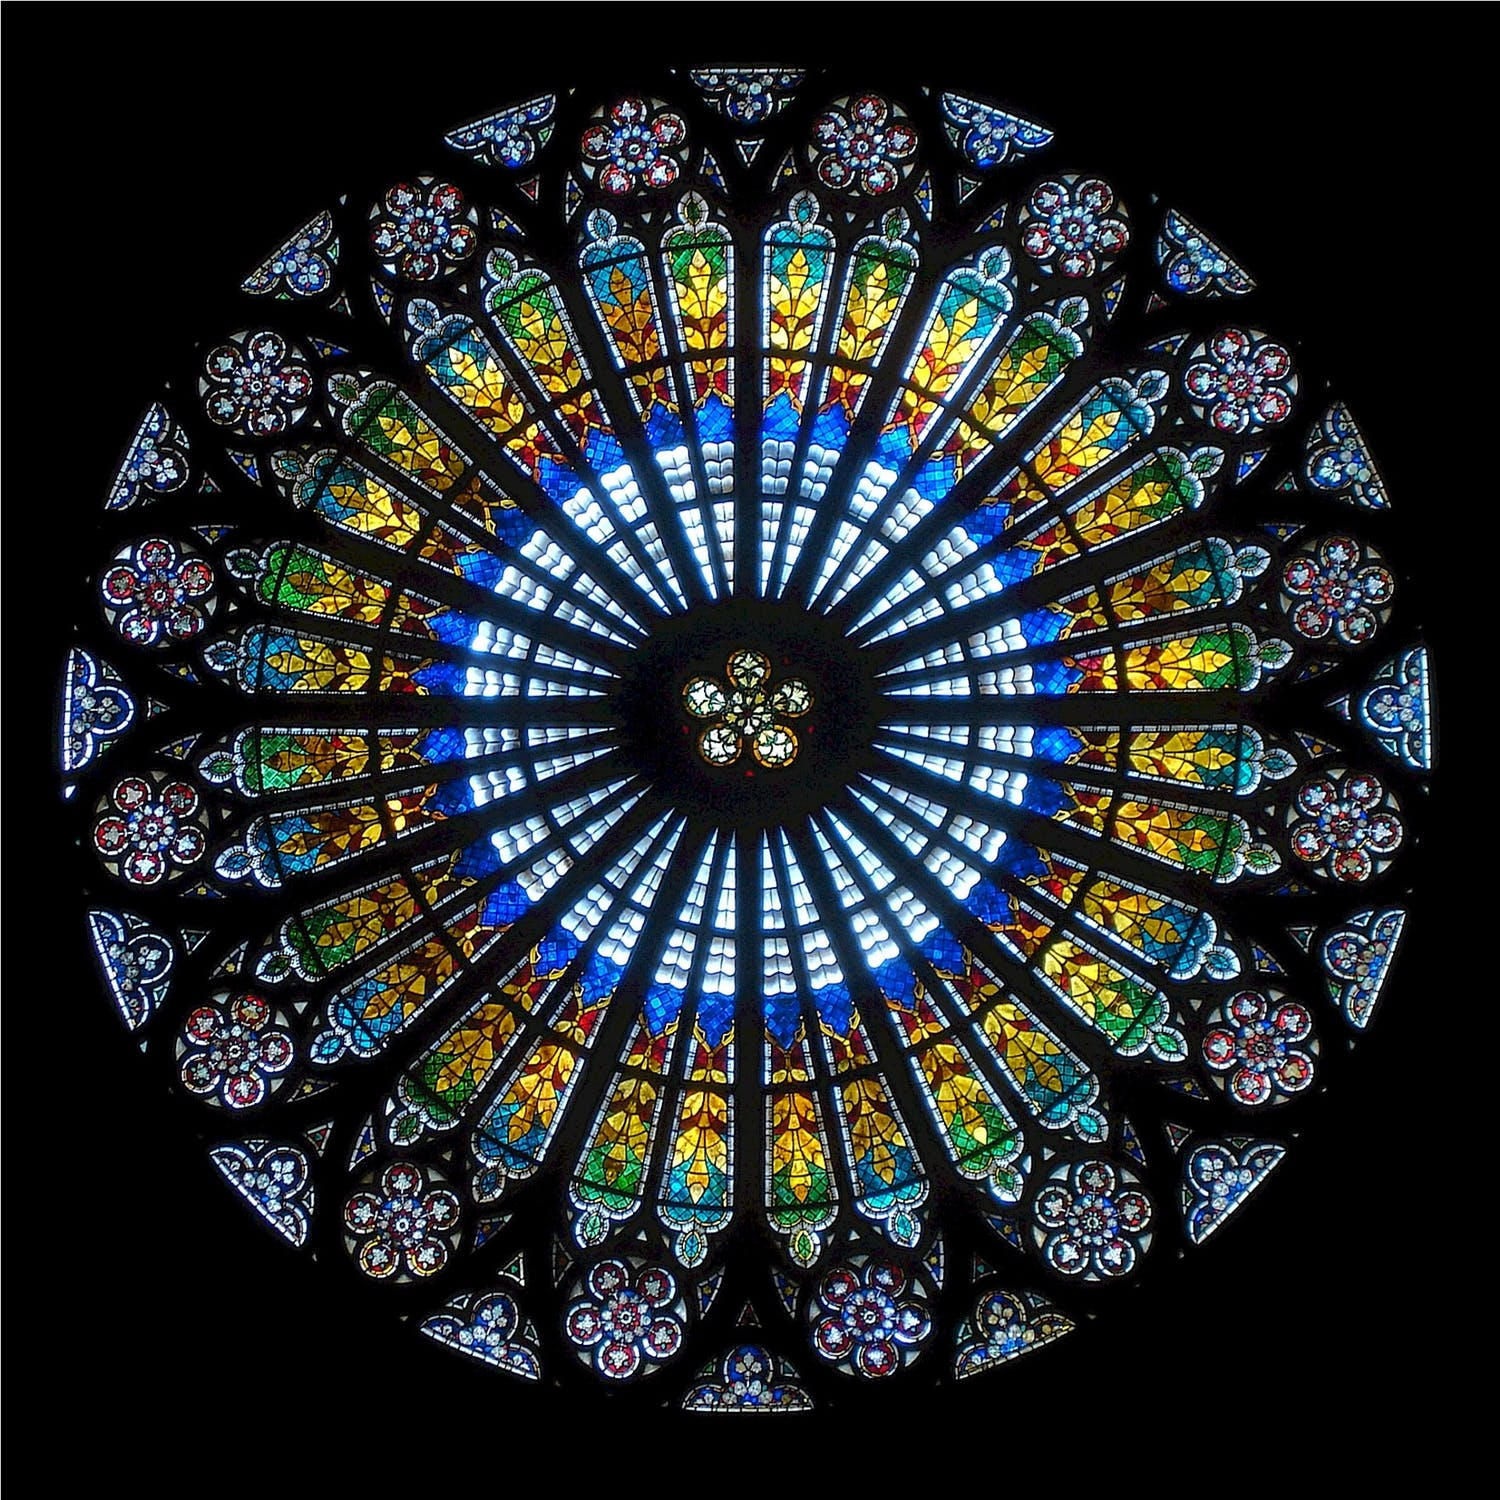 rose-window-strasbourg-cathedral-strasbourg-france-45975